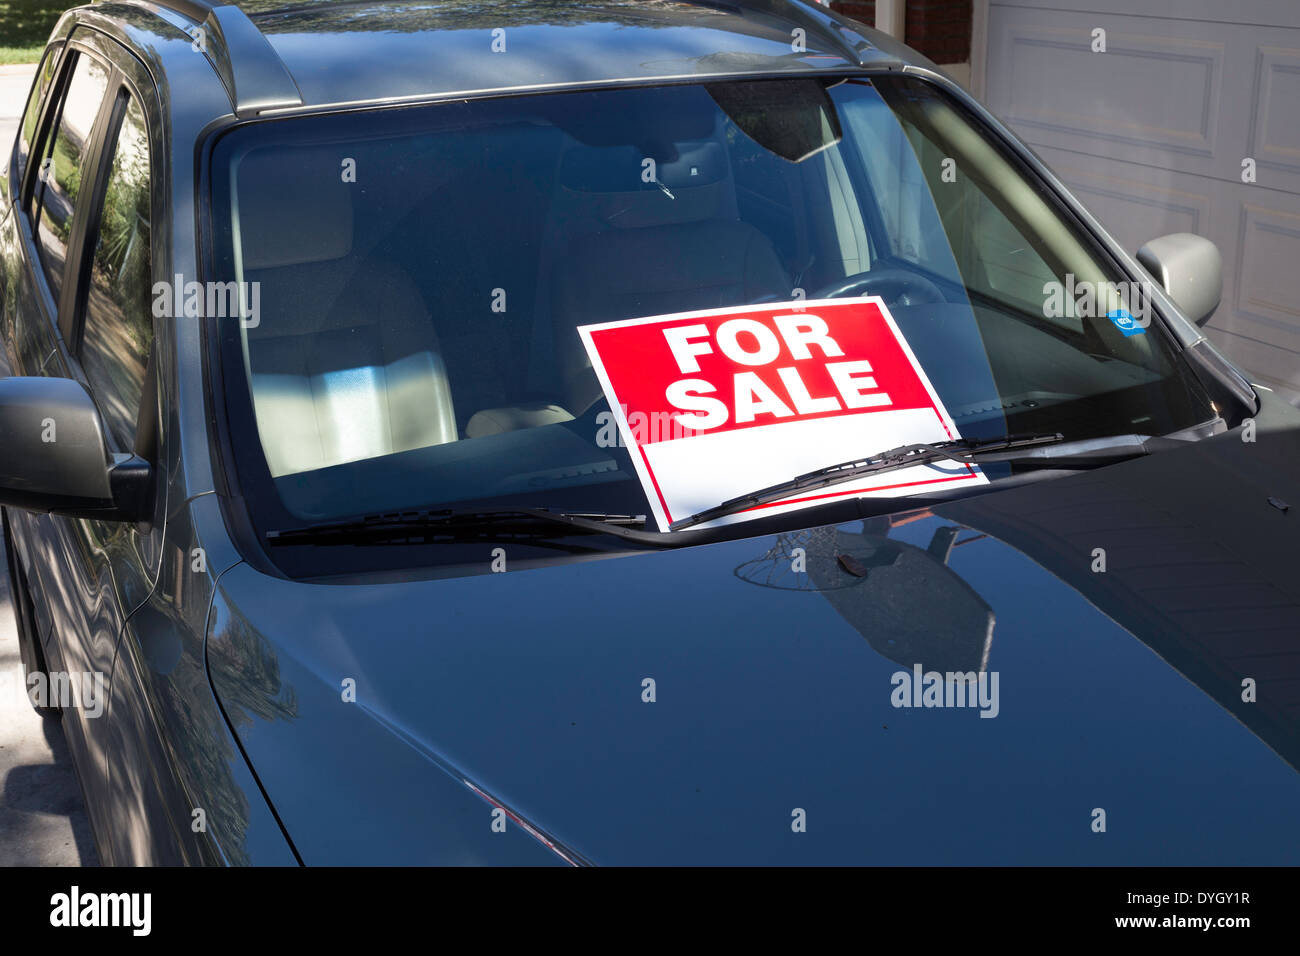 Used Car For Sale by Owner, USA Stock Photo: 68599267 - Alamy